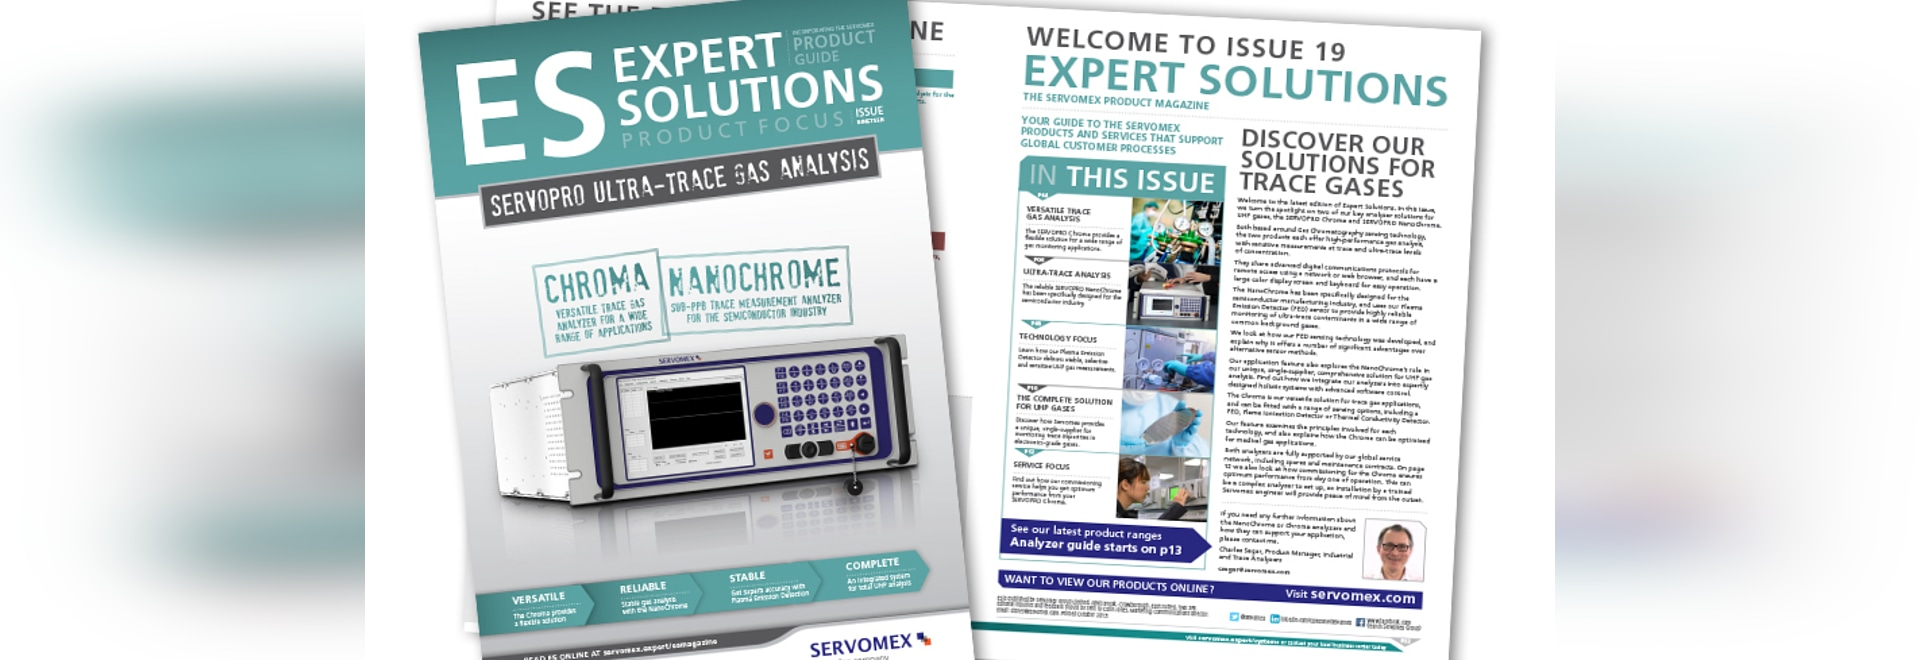 EXPERT SOLUTIONS ISSUE 19 TURNS SPOTLIGHT ON UHP GAS ANALYZERS